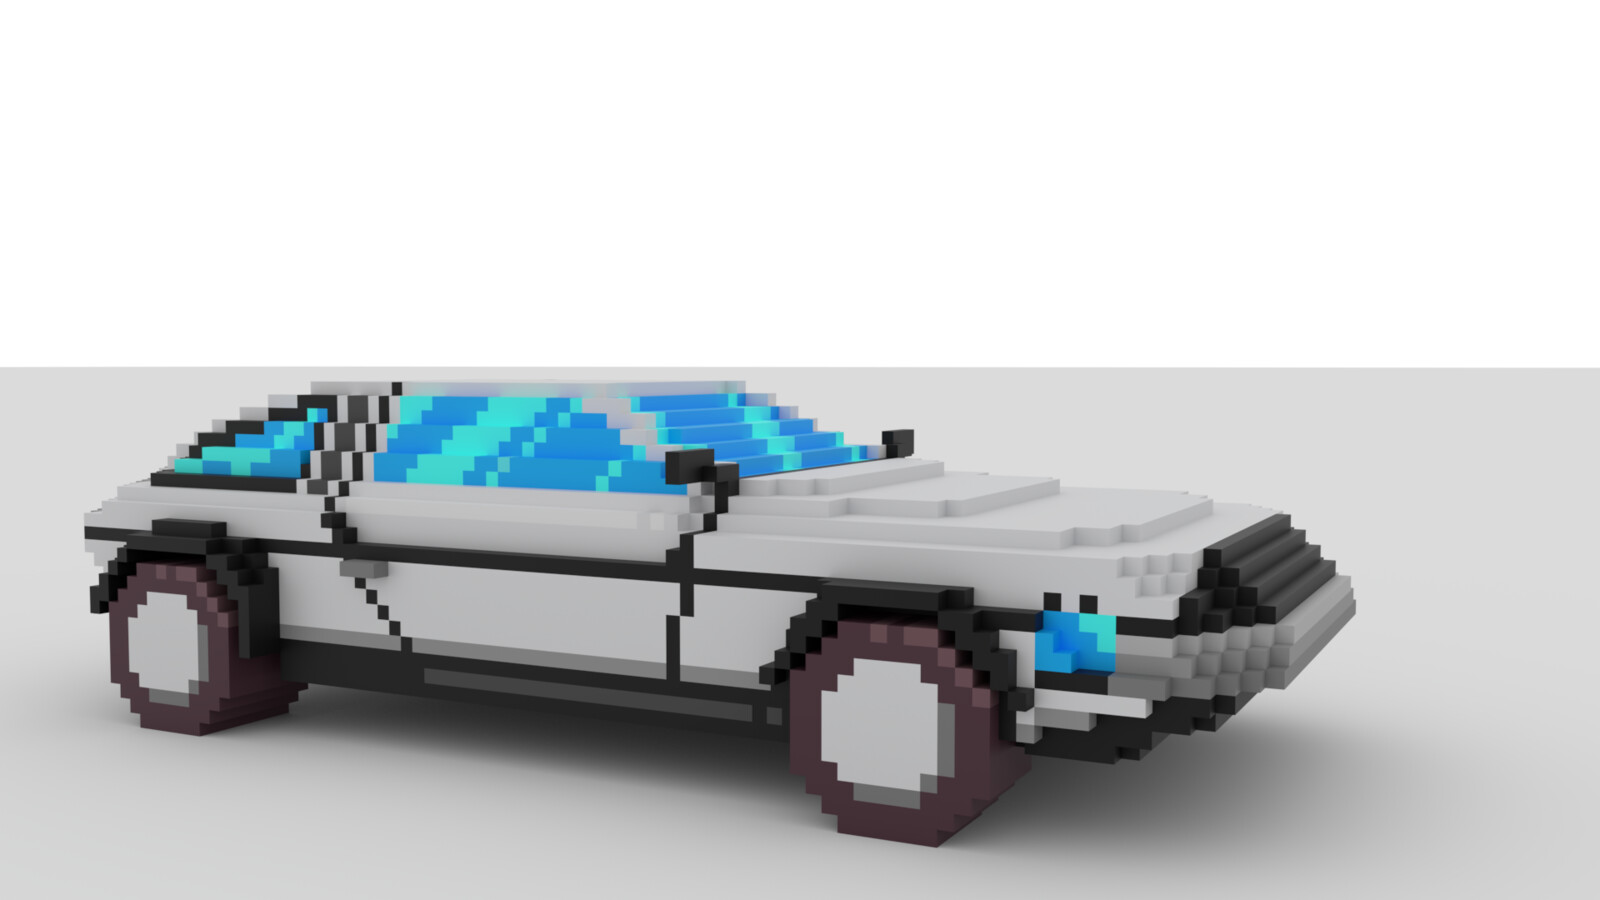 Voxel car made by JD Bethell